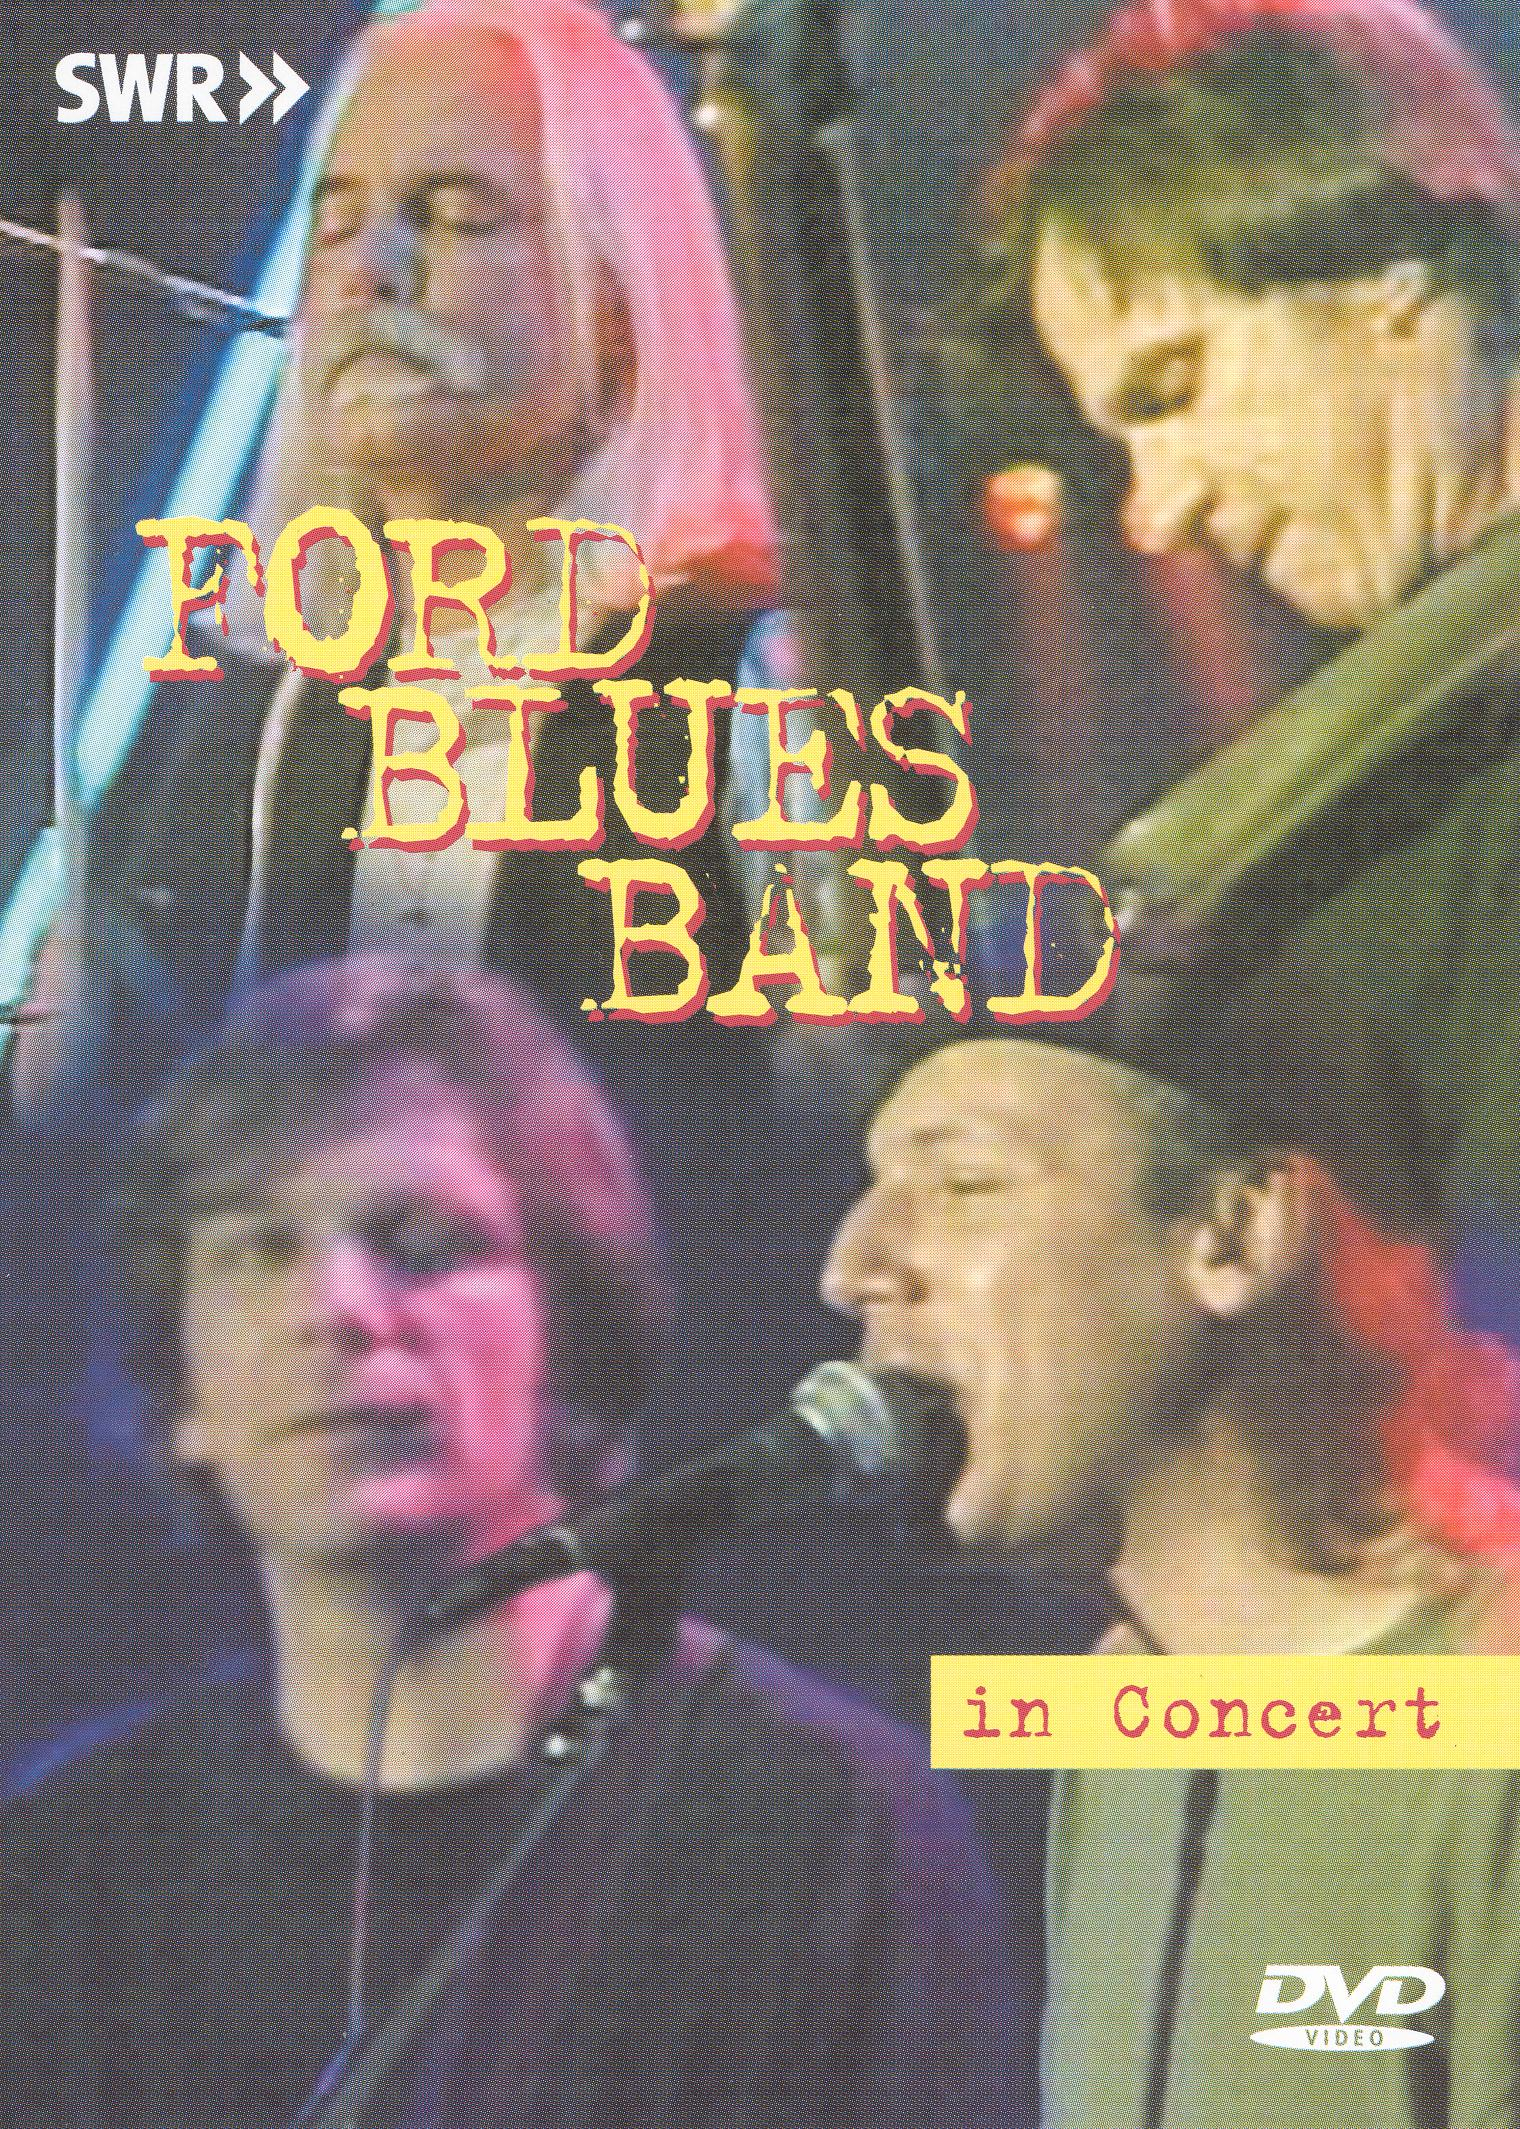 Ohne Filter - Musik Pur: The Ford Blues Band in Concert